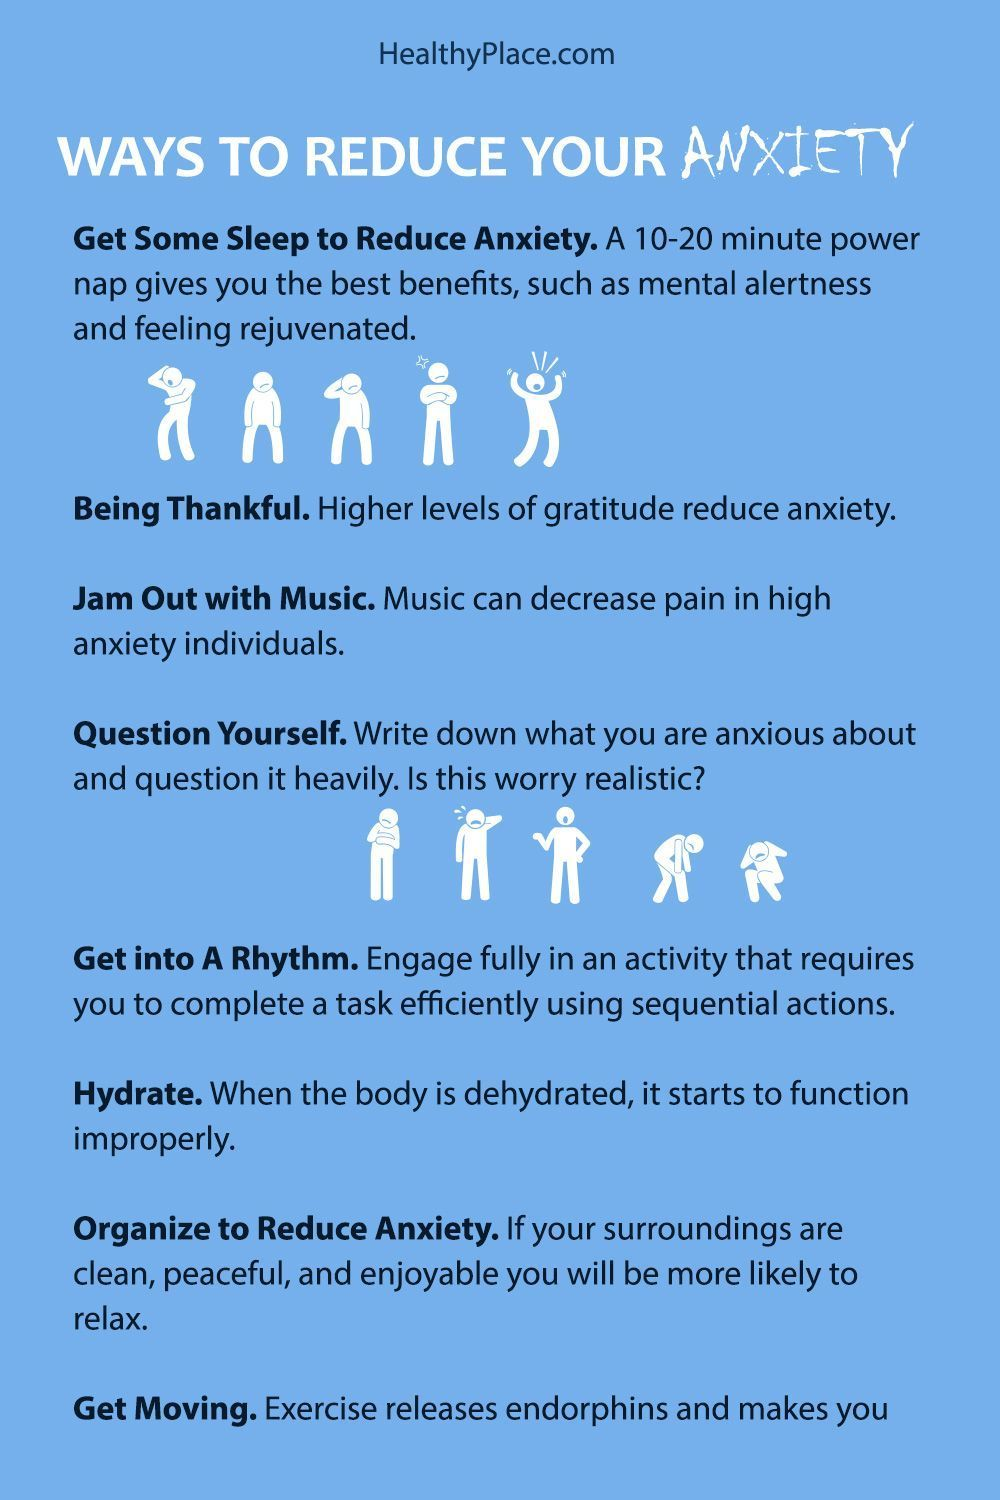 Anxiety symptoms and tips to get away from anxiety